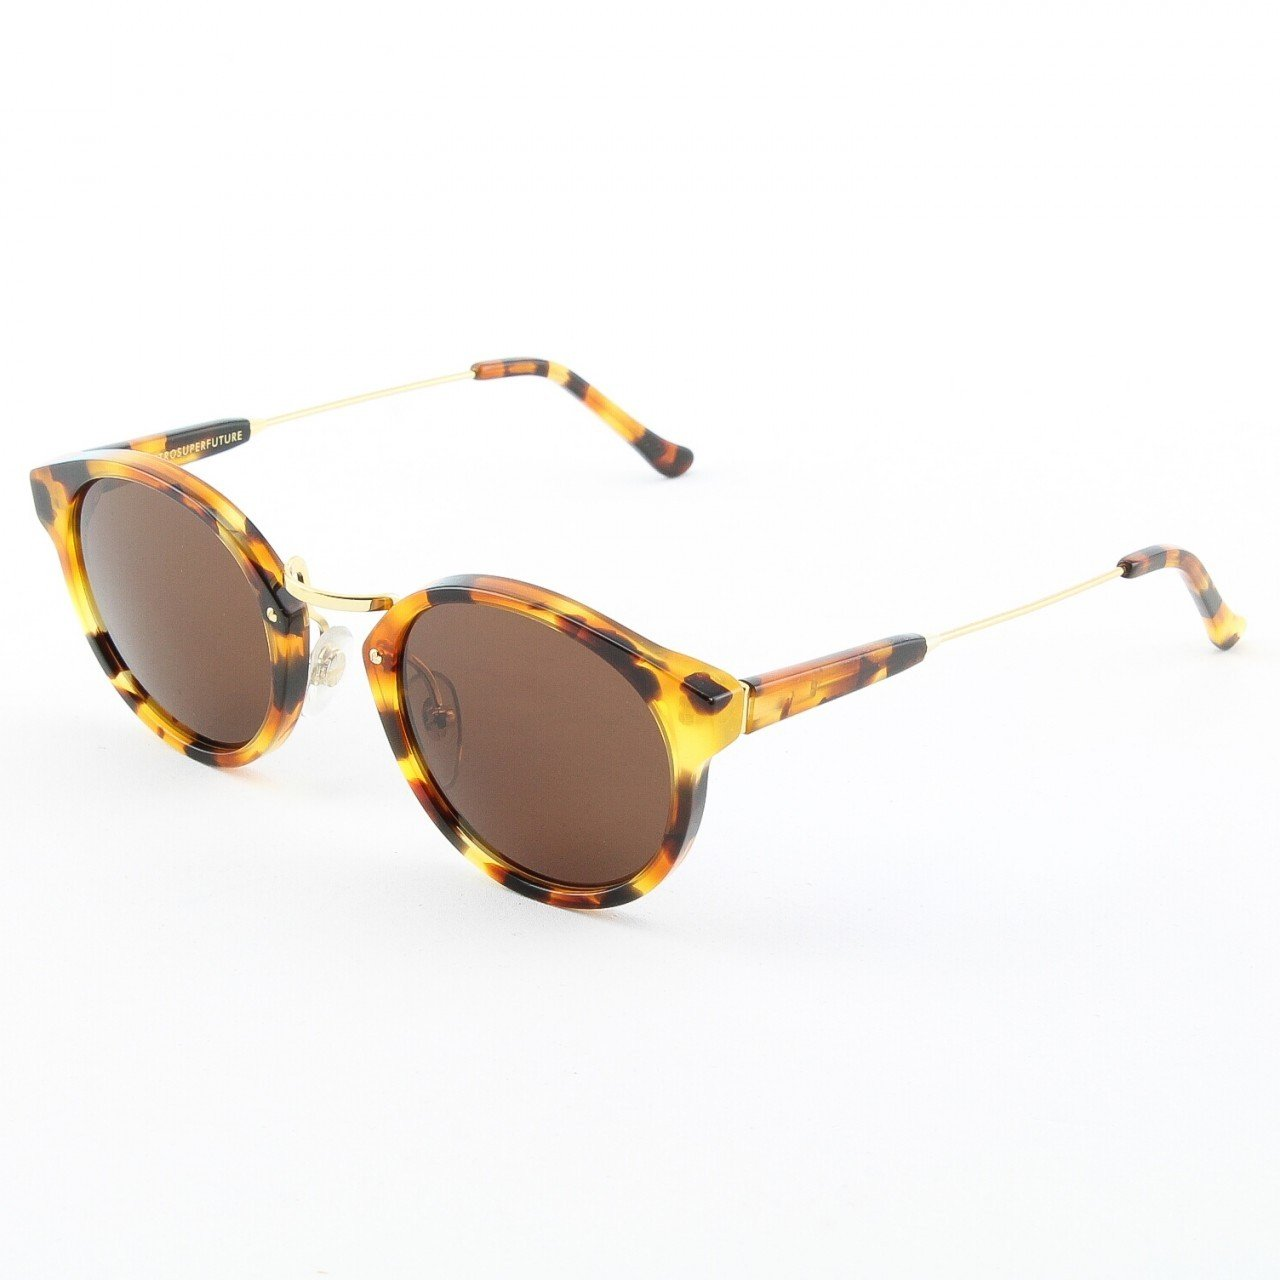 Super Panama 476/3T Sunglasses by RETROSUPERFUTURE Color Dark Havana with Brown Zeiss Lenses